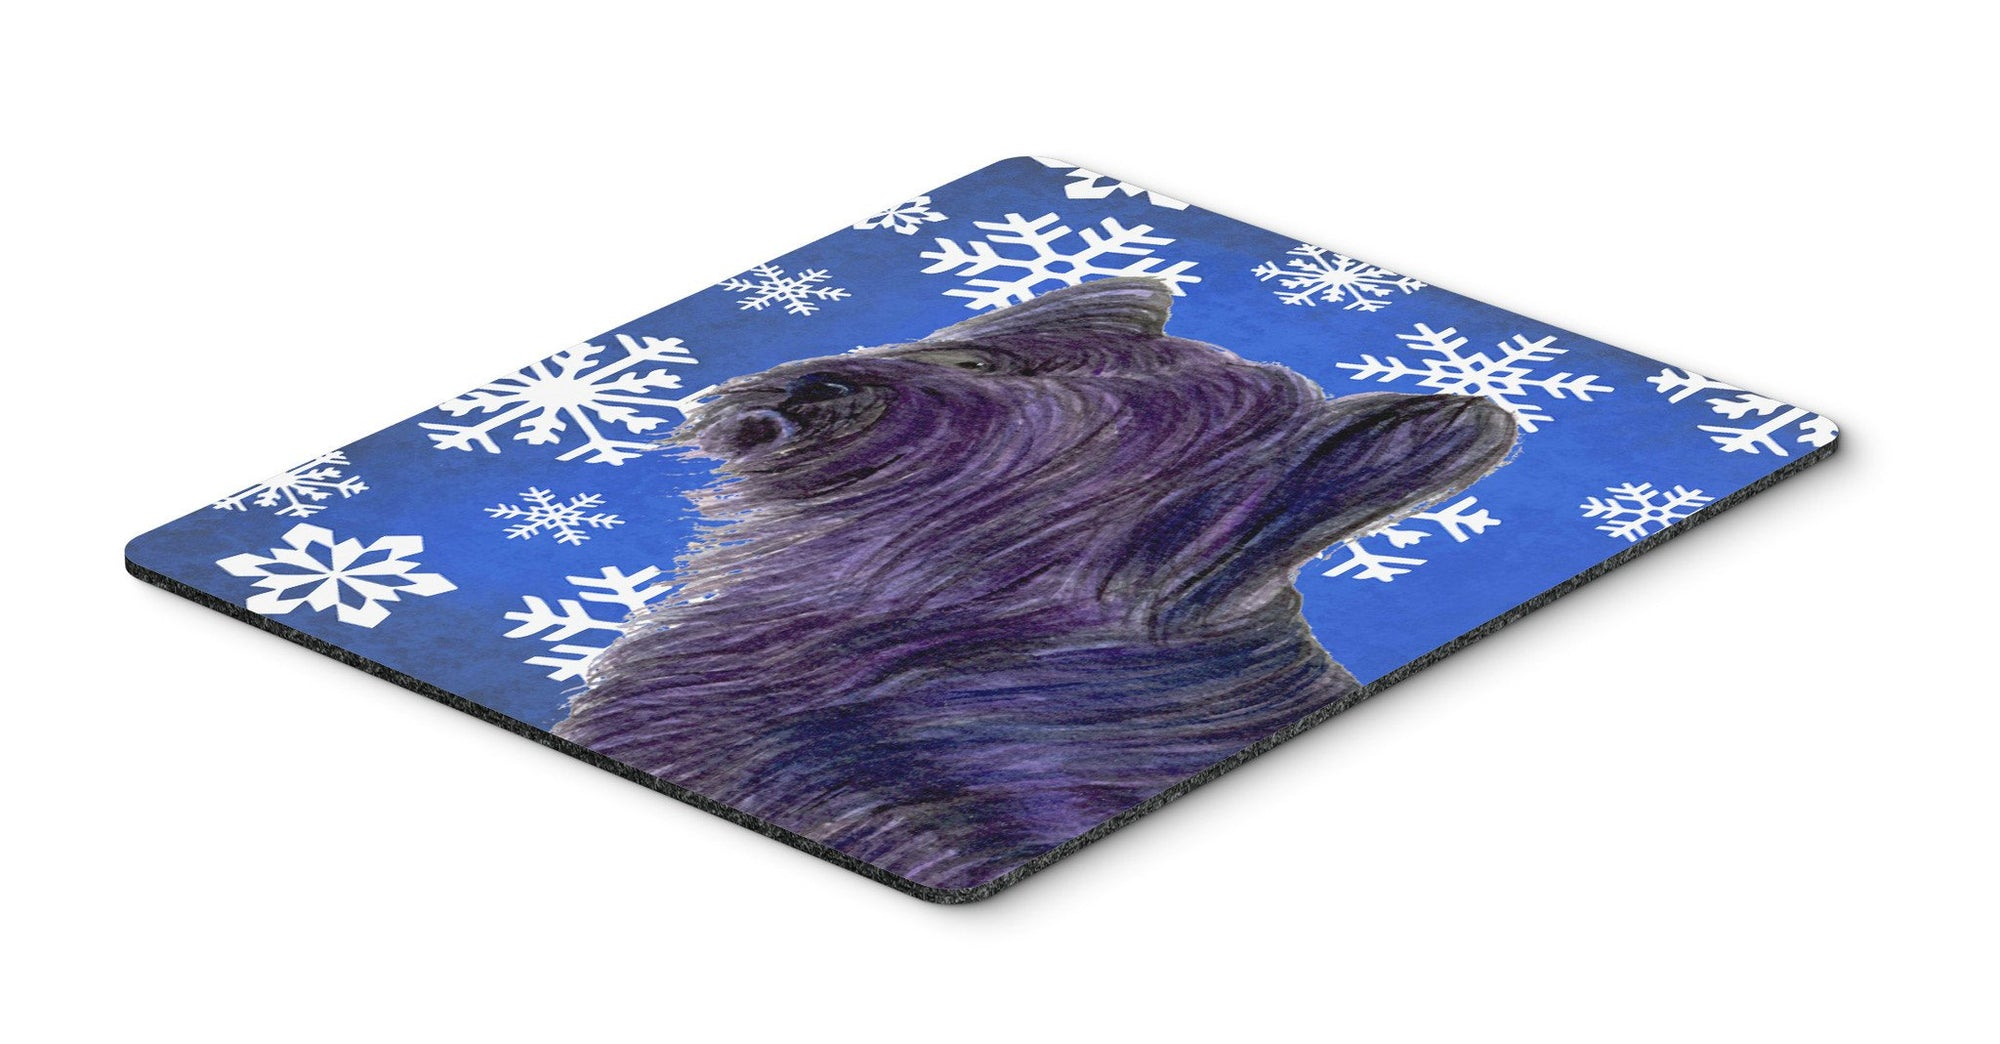 Skye Terrier Winter Snowflakes Holiday Mouse Pad, Hot Pad or Trivet by Caroline's Treasures